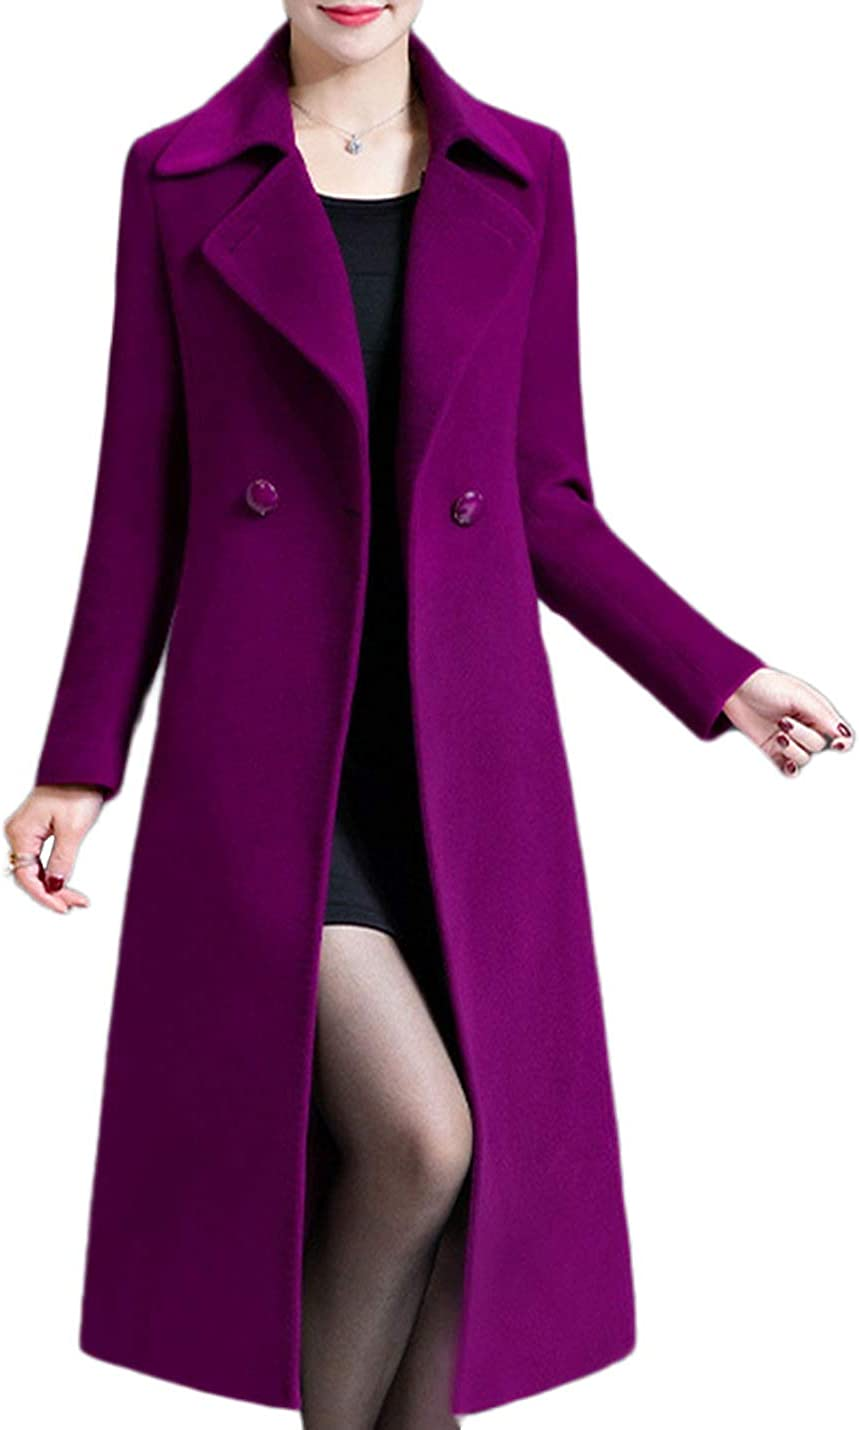 Uaneo Women's Casual Slim Notched Lapel Collar Double Breasted Midi Woolen Pea Coats(Purple-M)